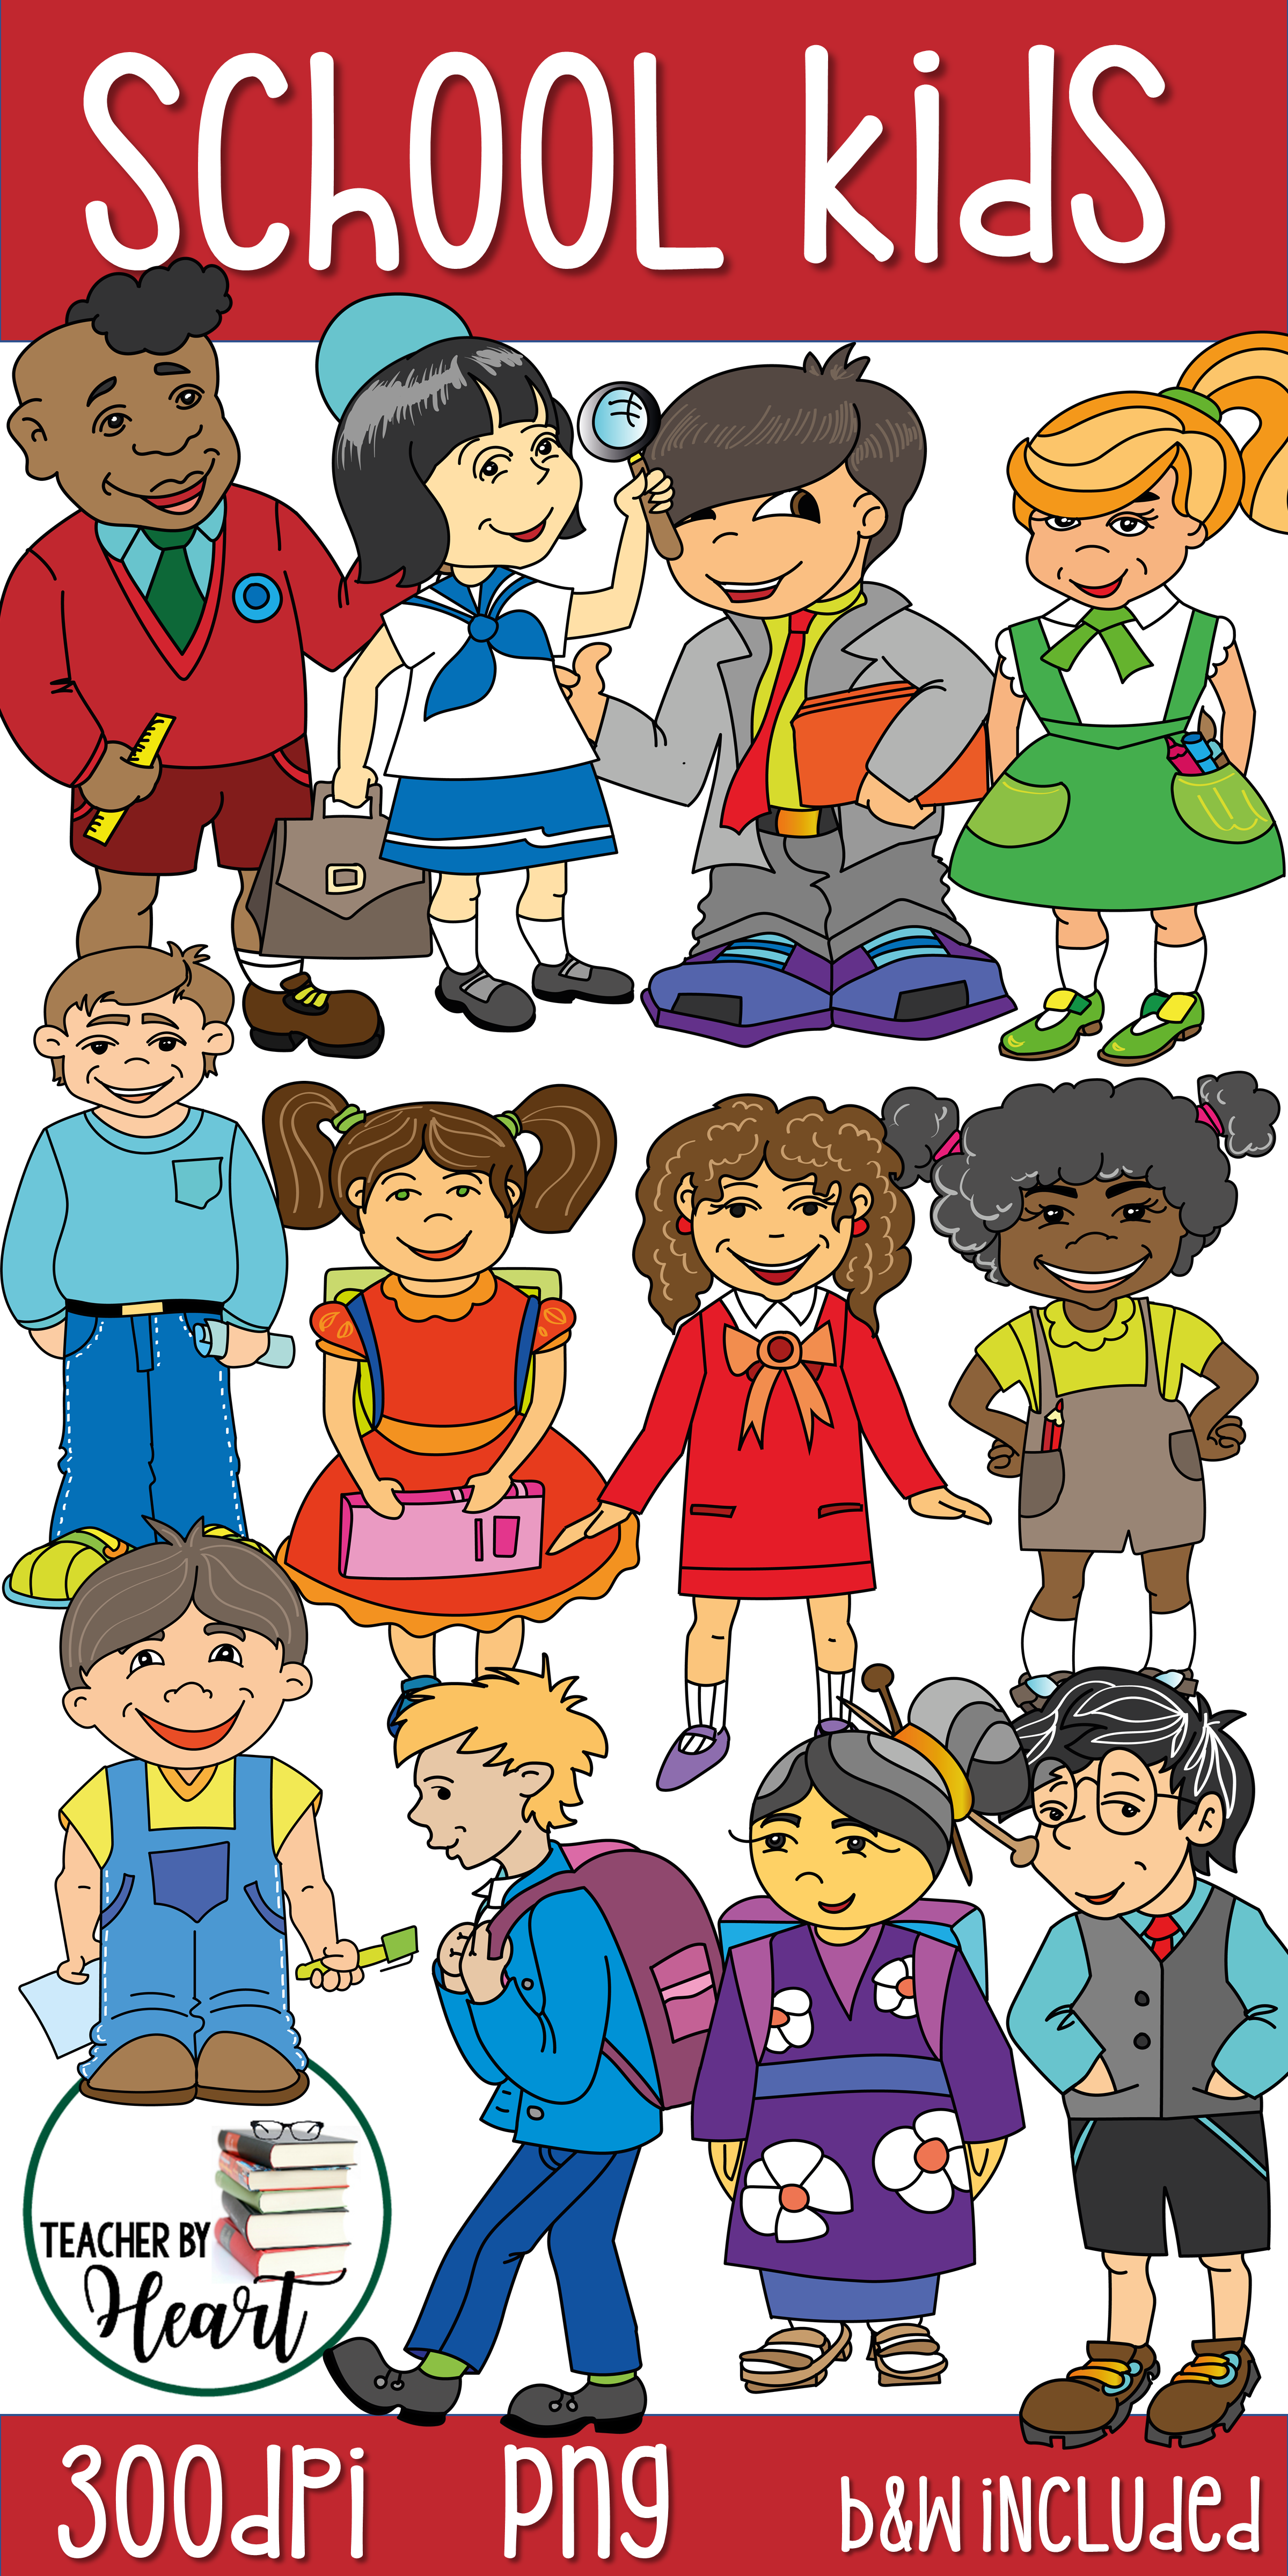 $5 Multicultural School Kids Clip Art set: a collection of.